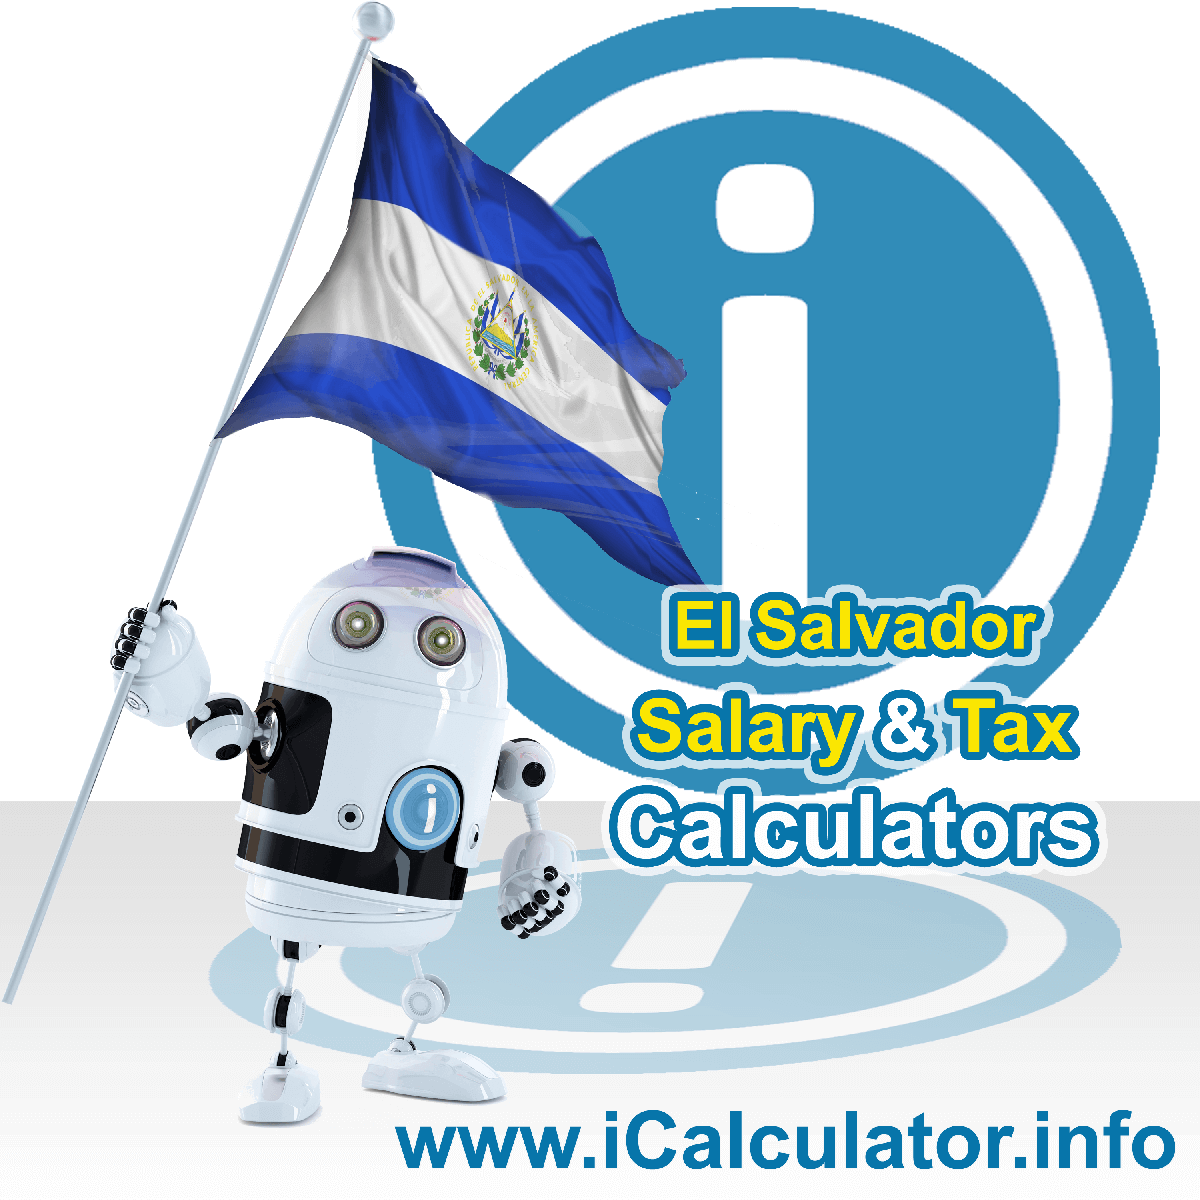 El Salvador Wage Calculator. This image shows the El Salvador flag and information relating to the tax formula for the El Salvador Tax Calculator